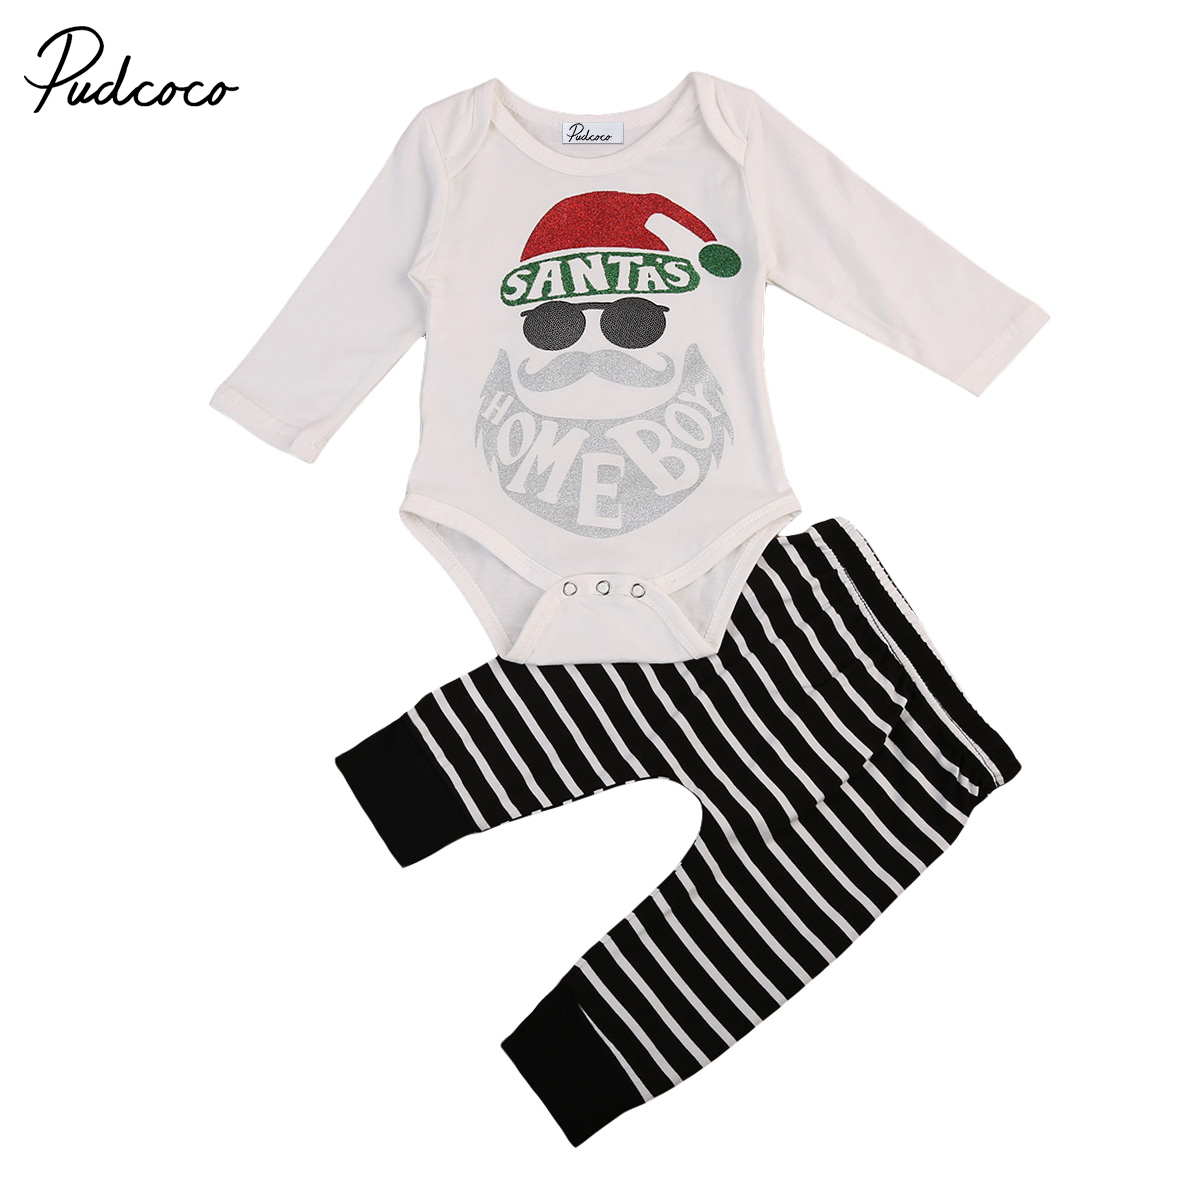 Babies Xmas Clothes Newborn Baby Boys Long Sleeve Santa Bodysuit Tops Striped Pants Outfit Christmas Clothes 2 pcs Clothing Sets girls tops cute pants outfit clothes newborn kids baby girl clothing sets summer off shoulder striped short sleeve 1 6t